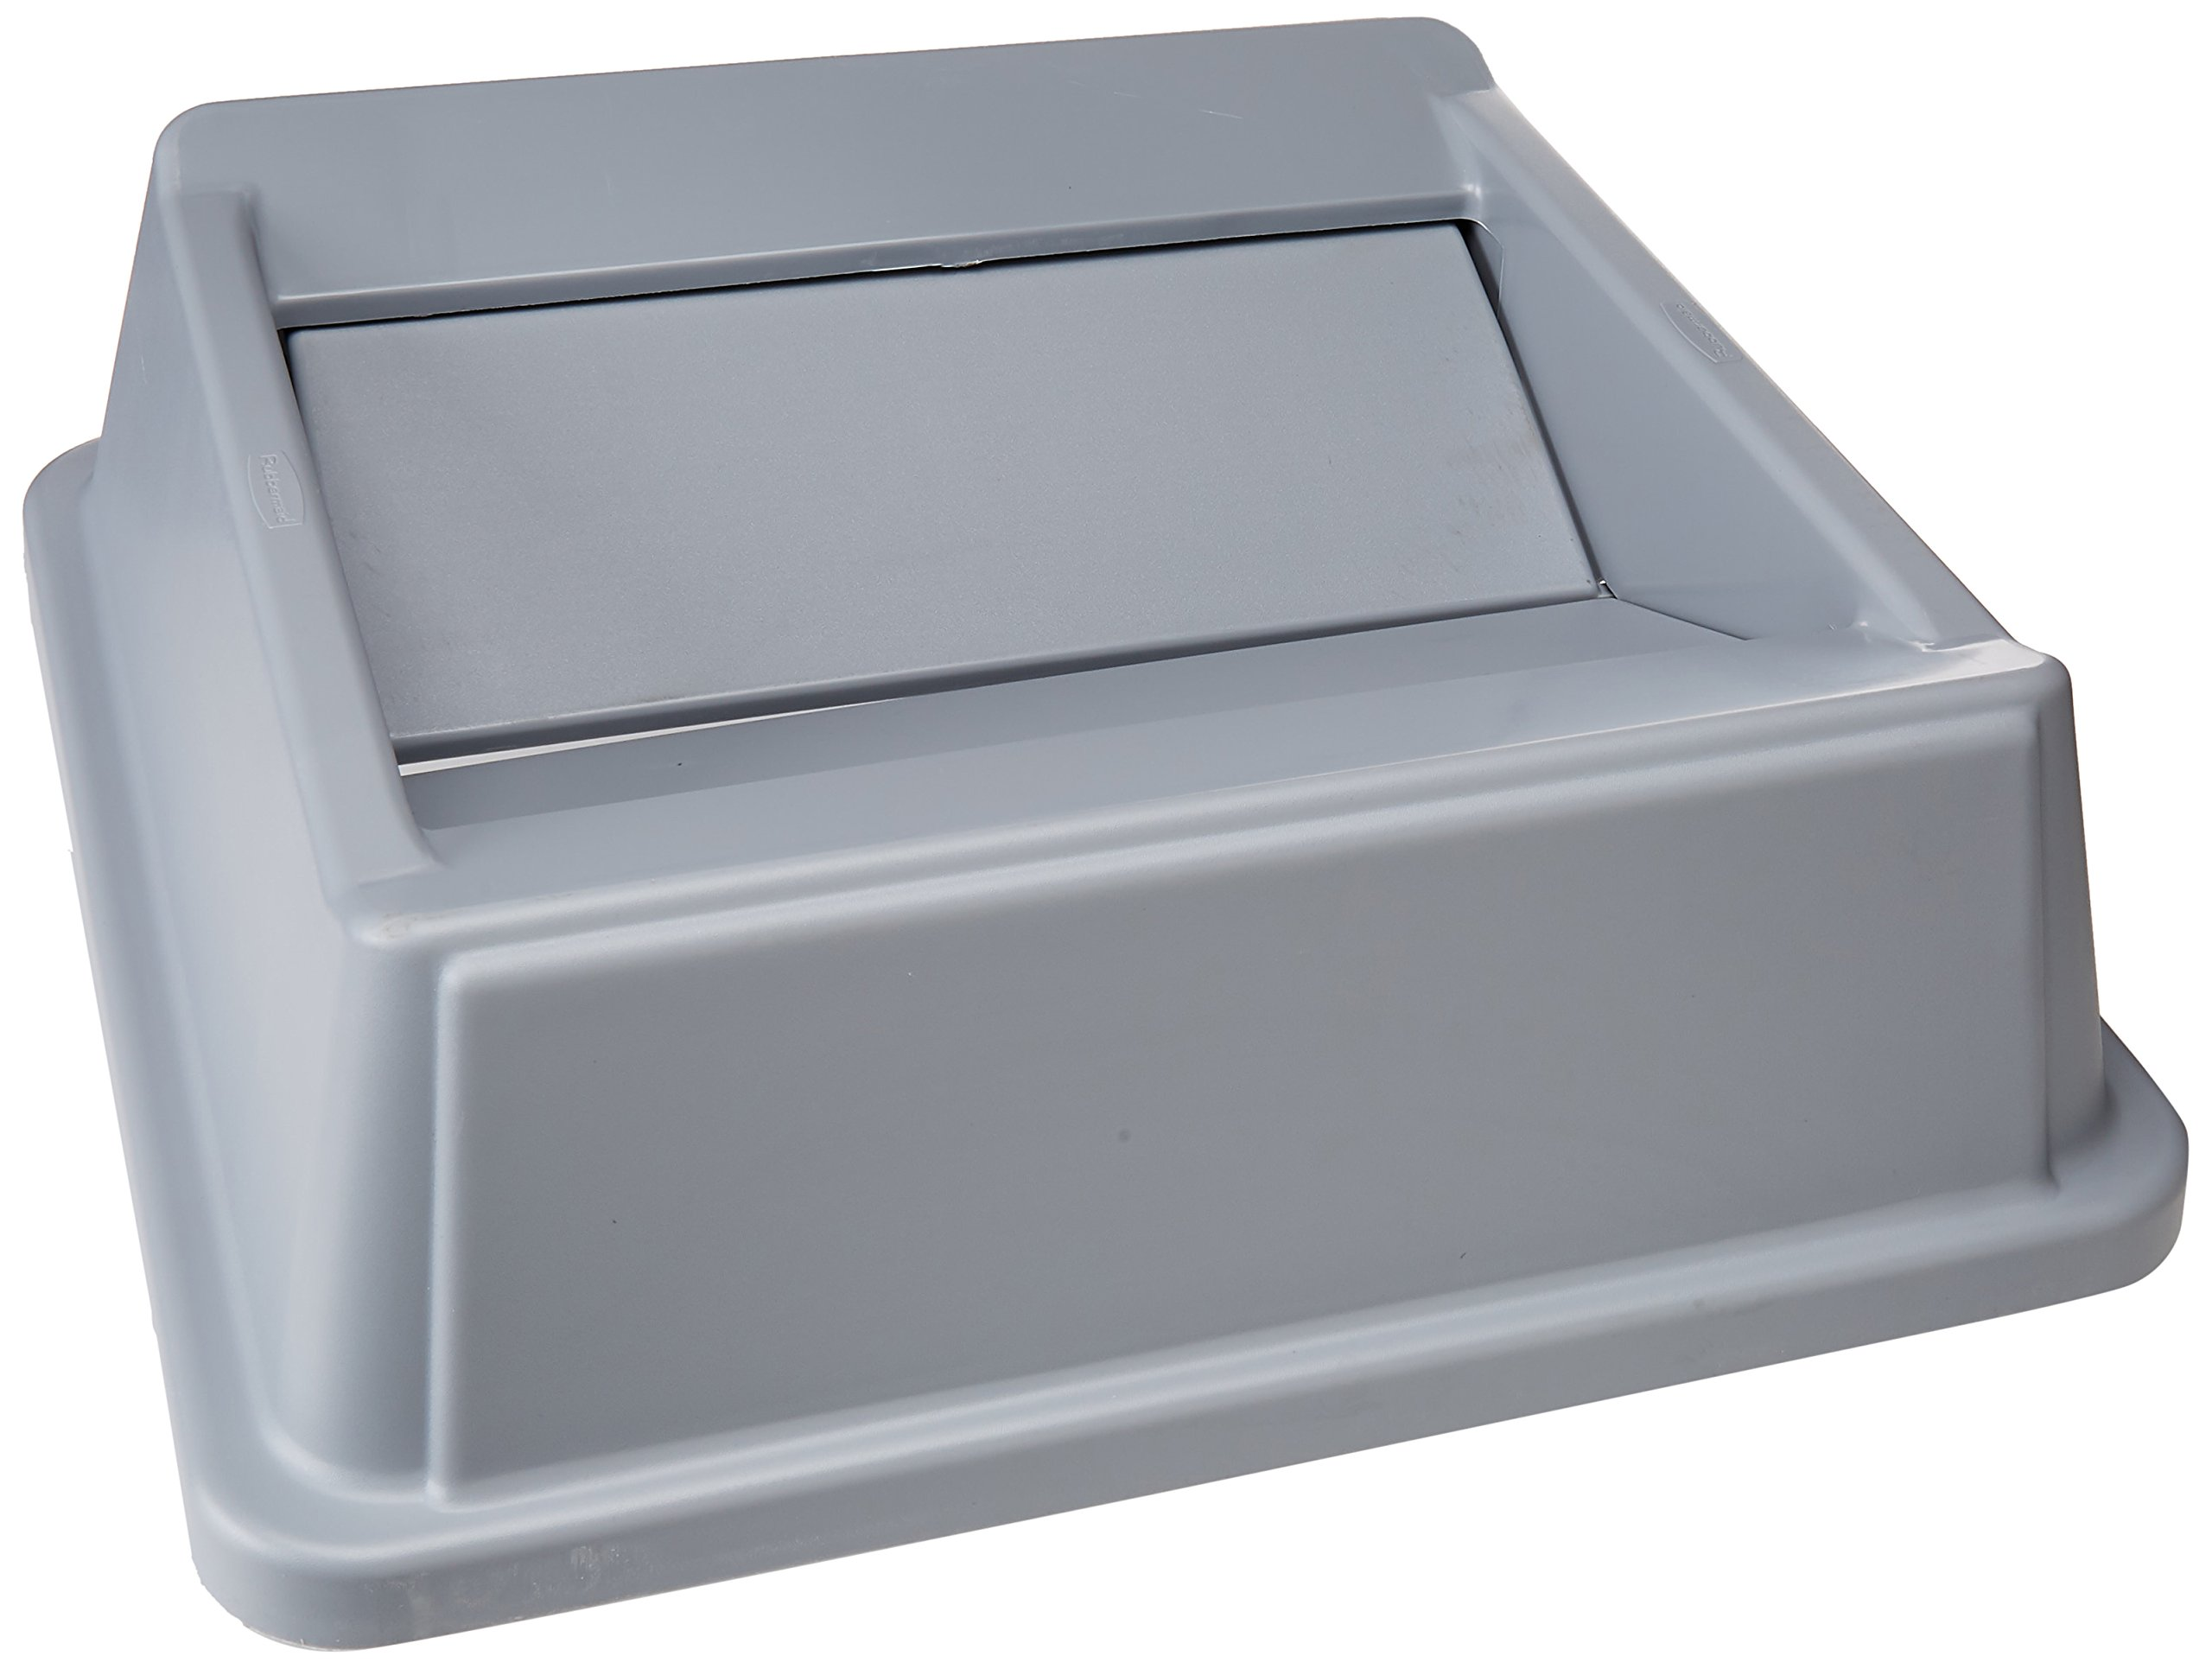 Cheap Rubbermaid Commercial Trash, find Rubbermaid Commercial Trash ...